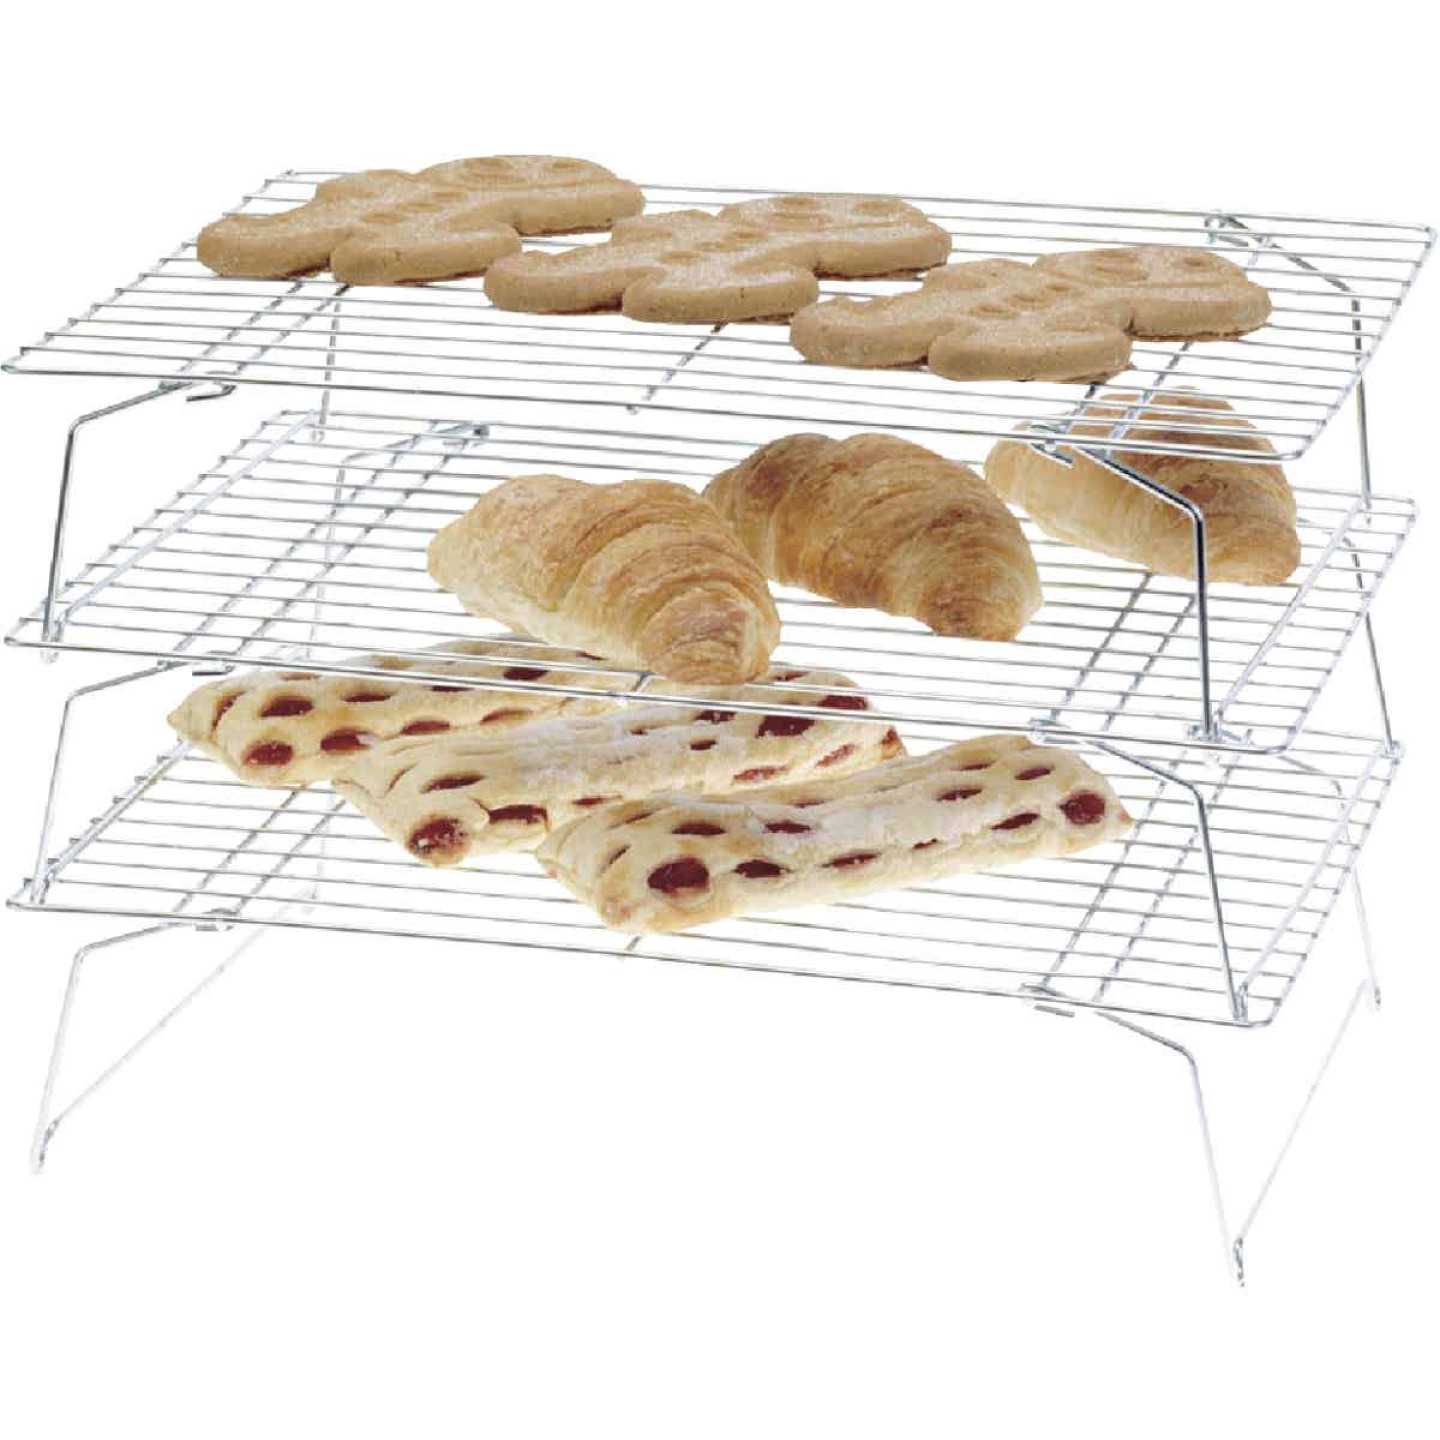 Norpro 10 In. x 14 In. Baking & Cooling Rack (3-Pack) Image 1